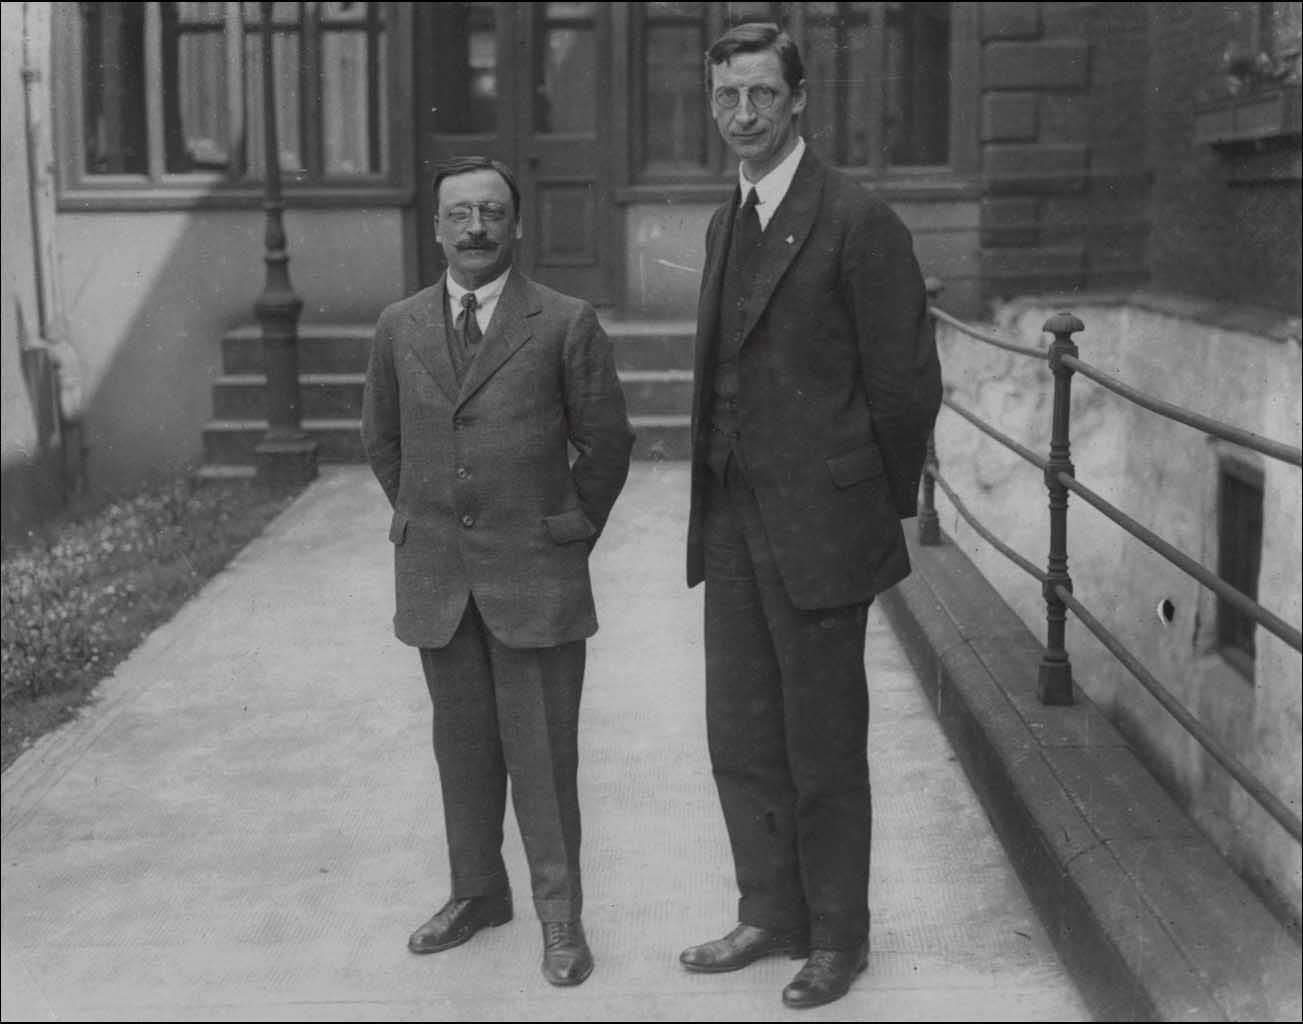 eamon de valera Key personality - eamonn devalera eamon devalera eamon devalera was born in american and came to ireland when his father died he joined the gaelic league in 1908 and the irish volunteers in 1913.